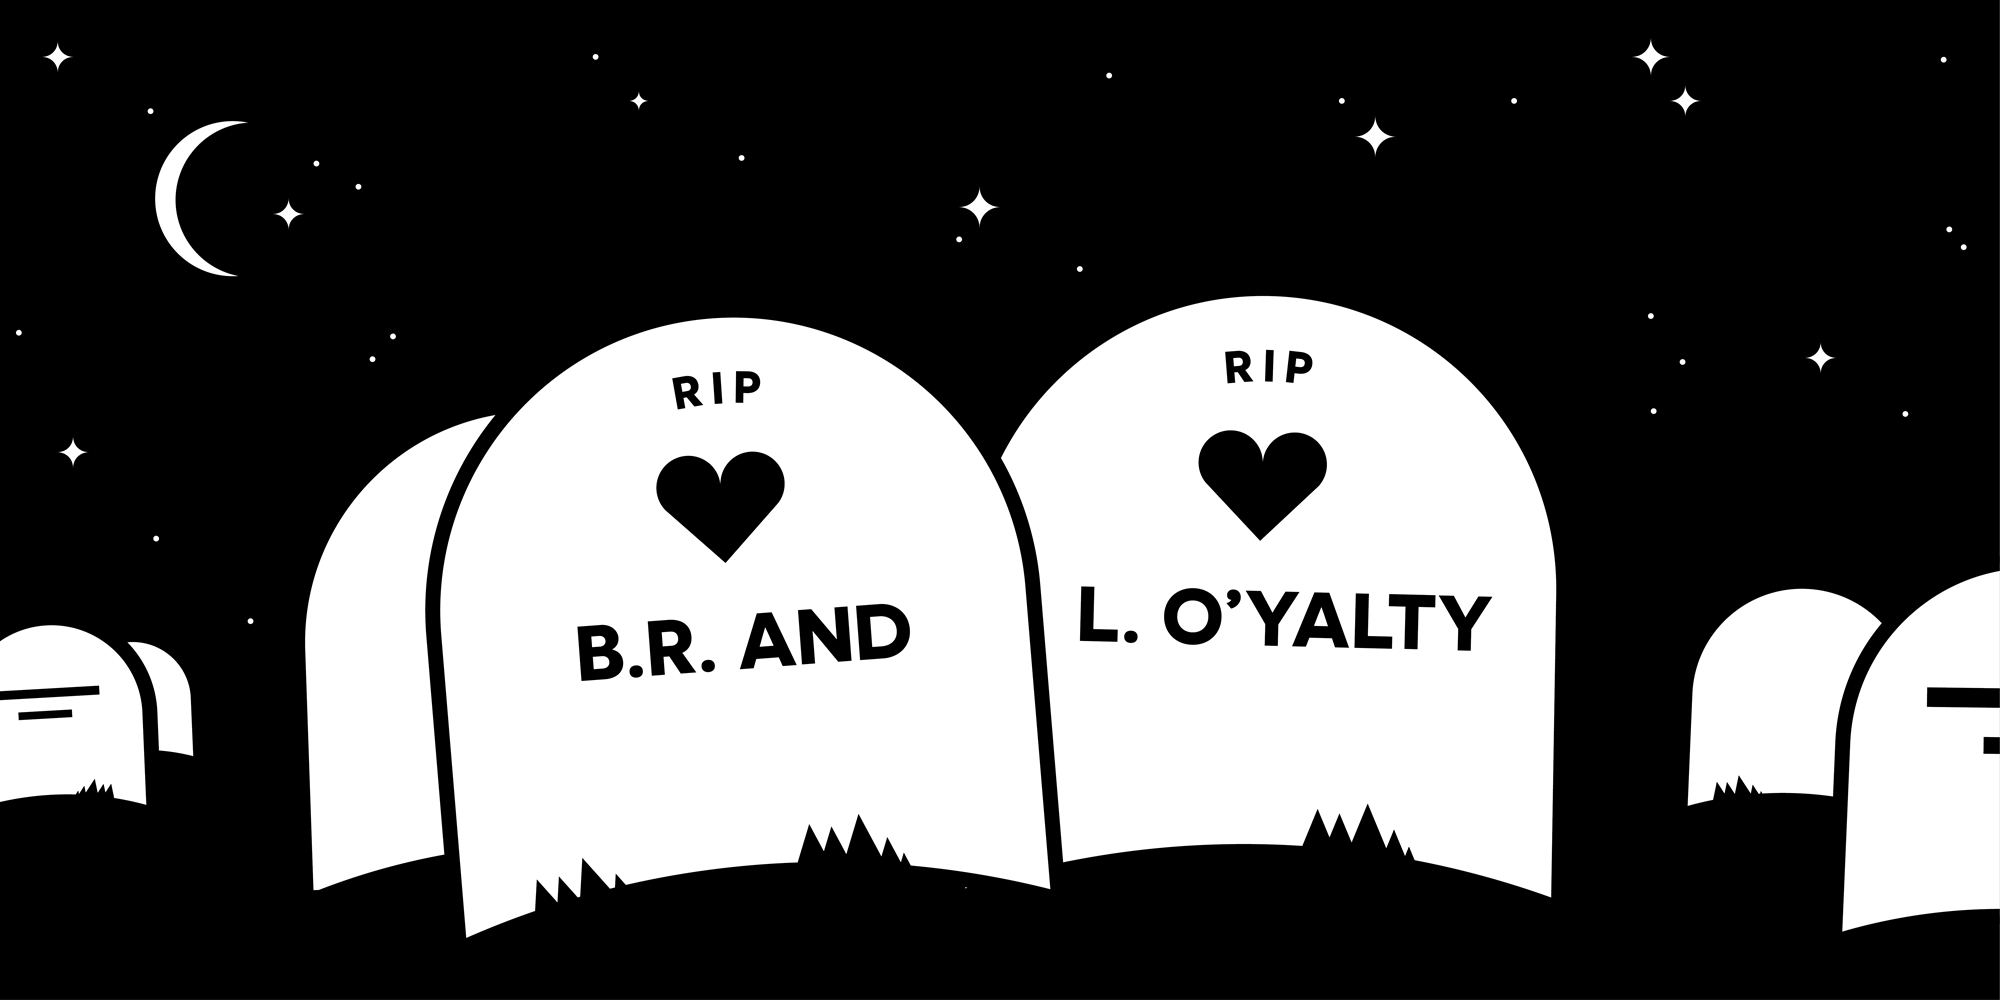 The death of brand loyalty